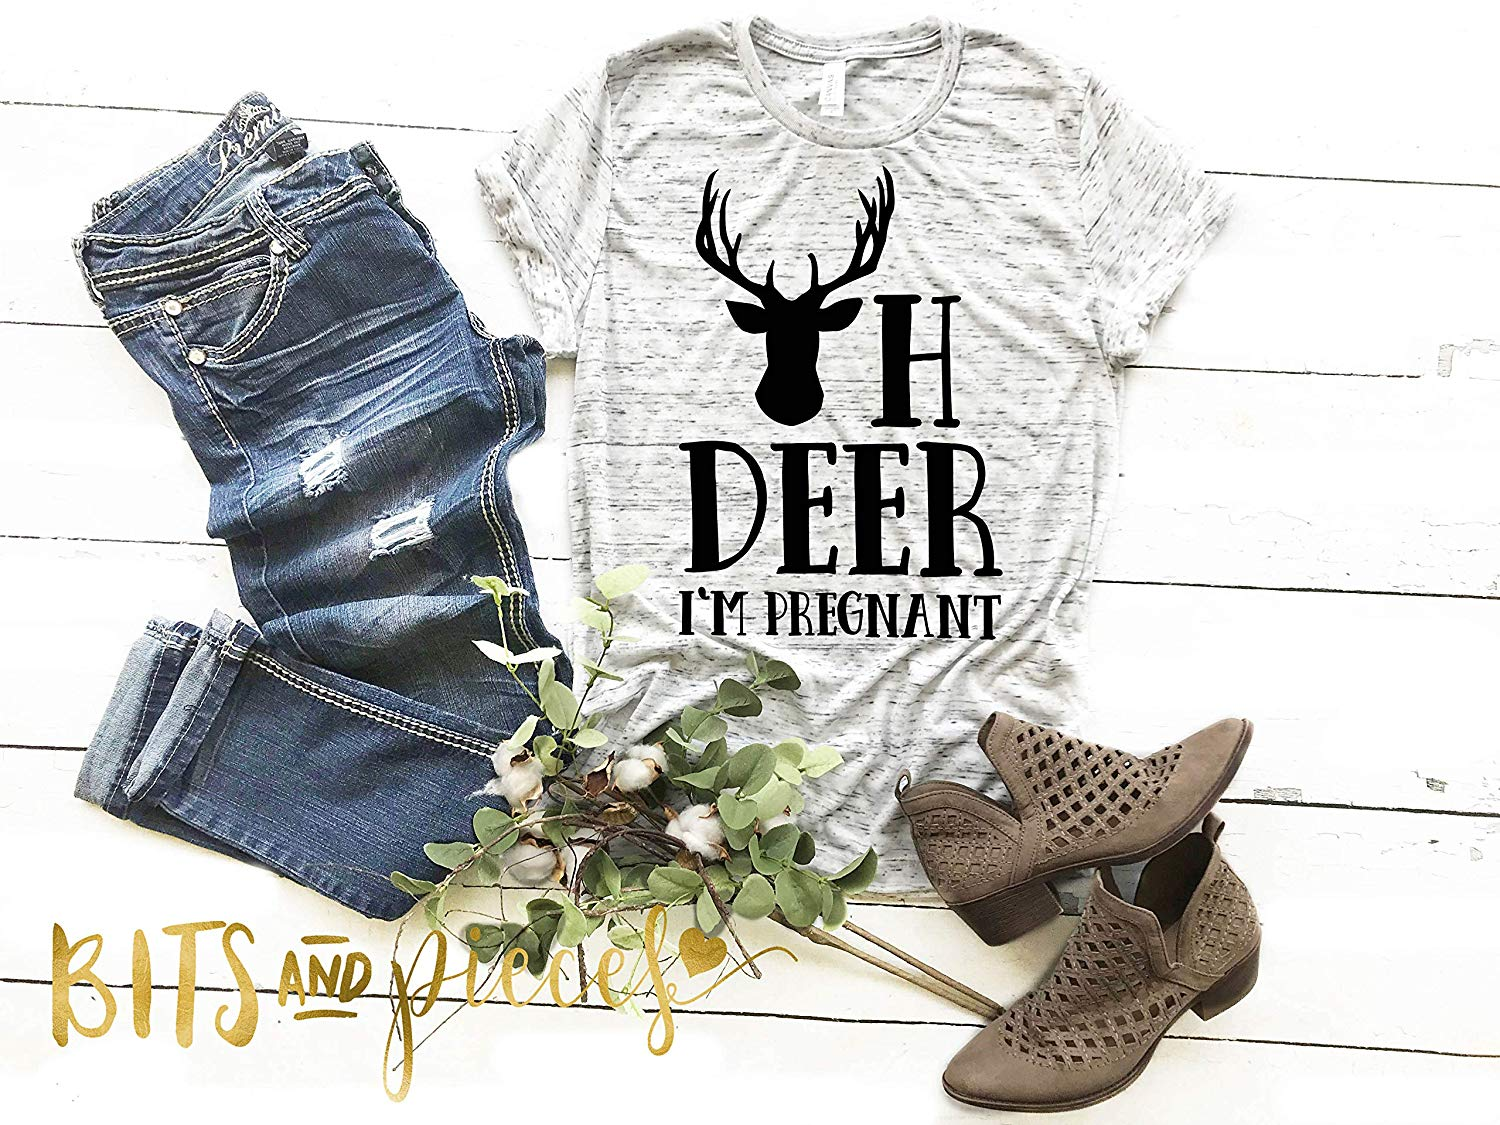 d0cf96abca844 Get Quotations · Oh Deer I'm Pregnant - Cute Tee - Pregnant AF Graphic Tee,  Pregnancy